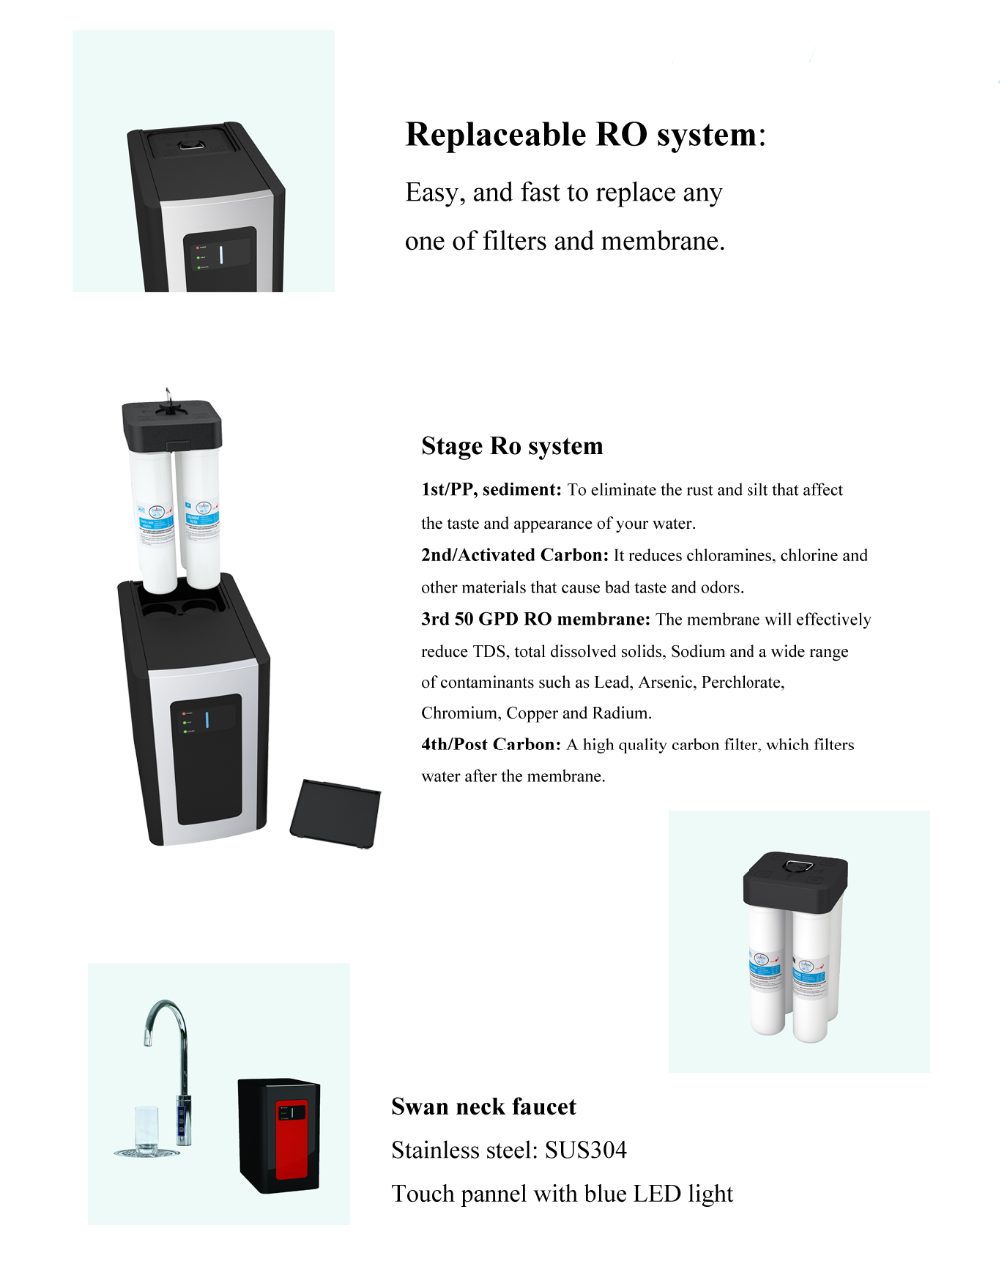 RO Water purifier with replaceable RO system filters